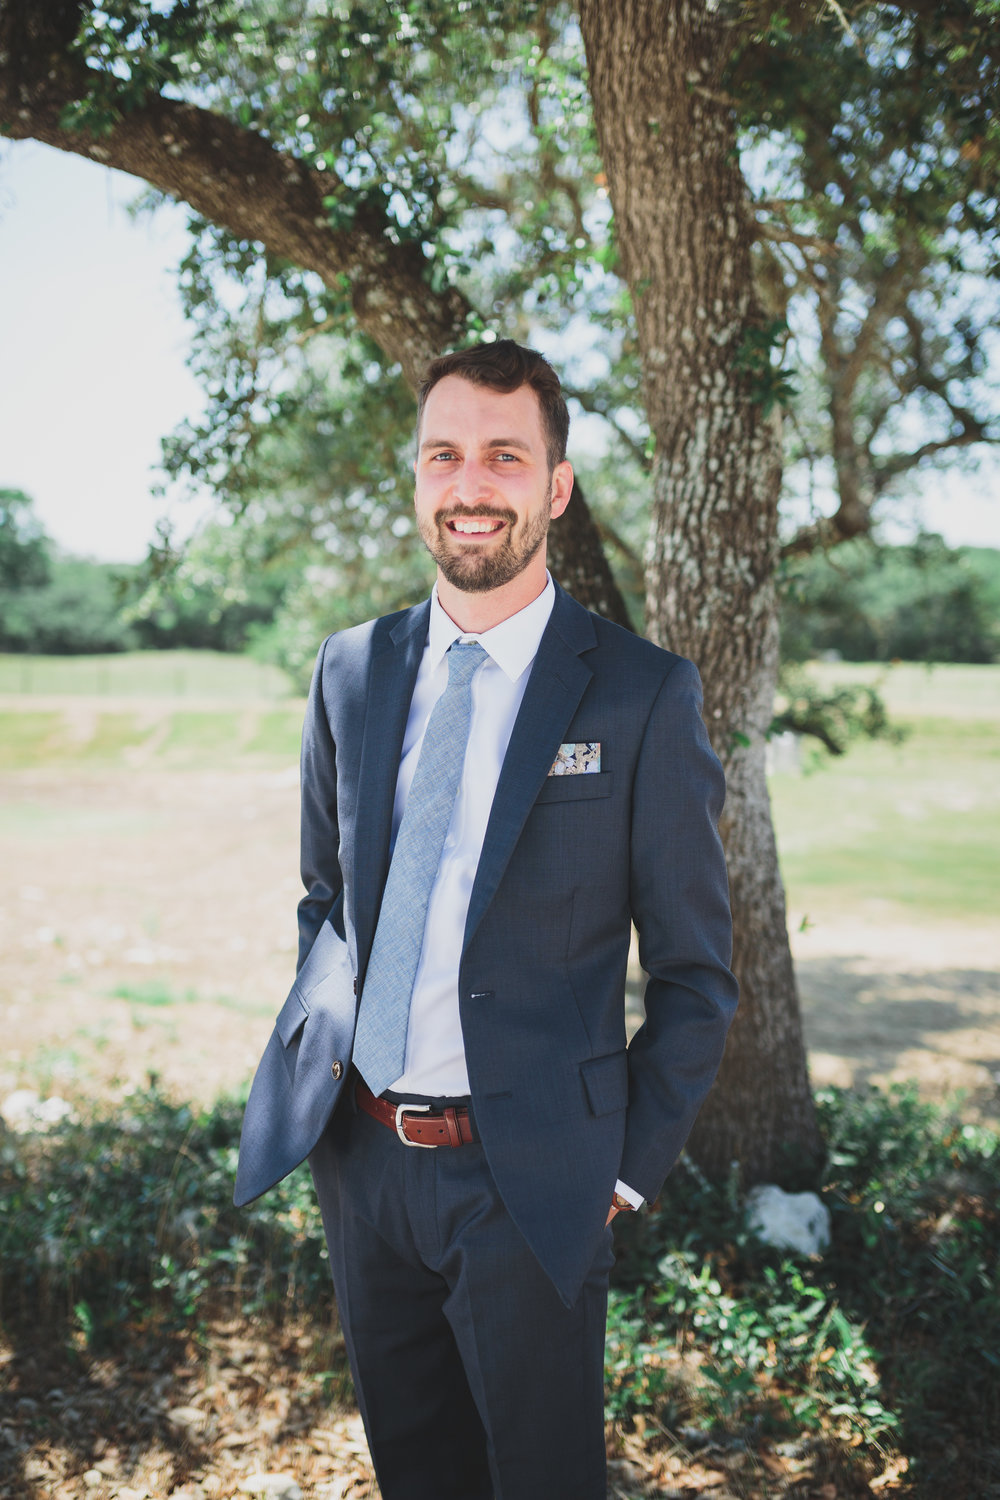 austin_wedding_photographer_23